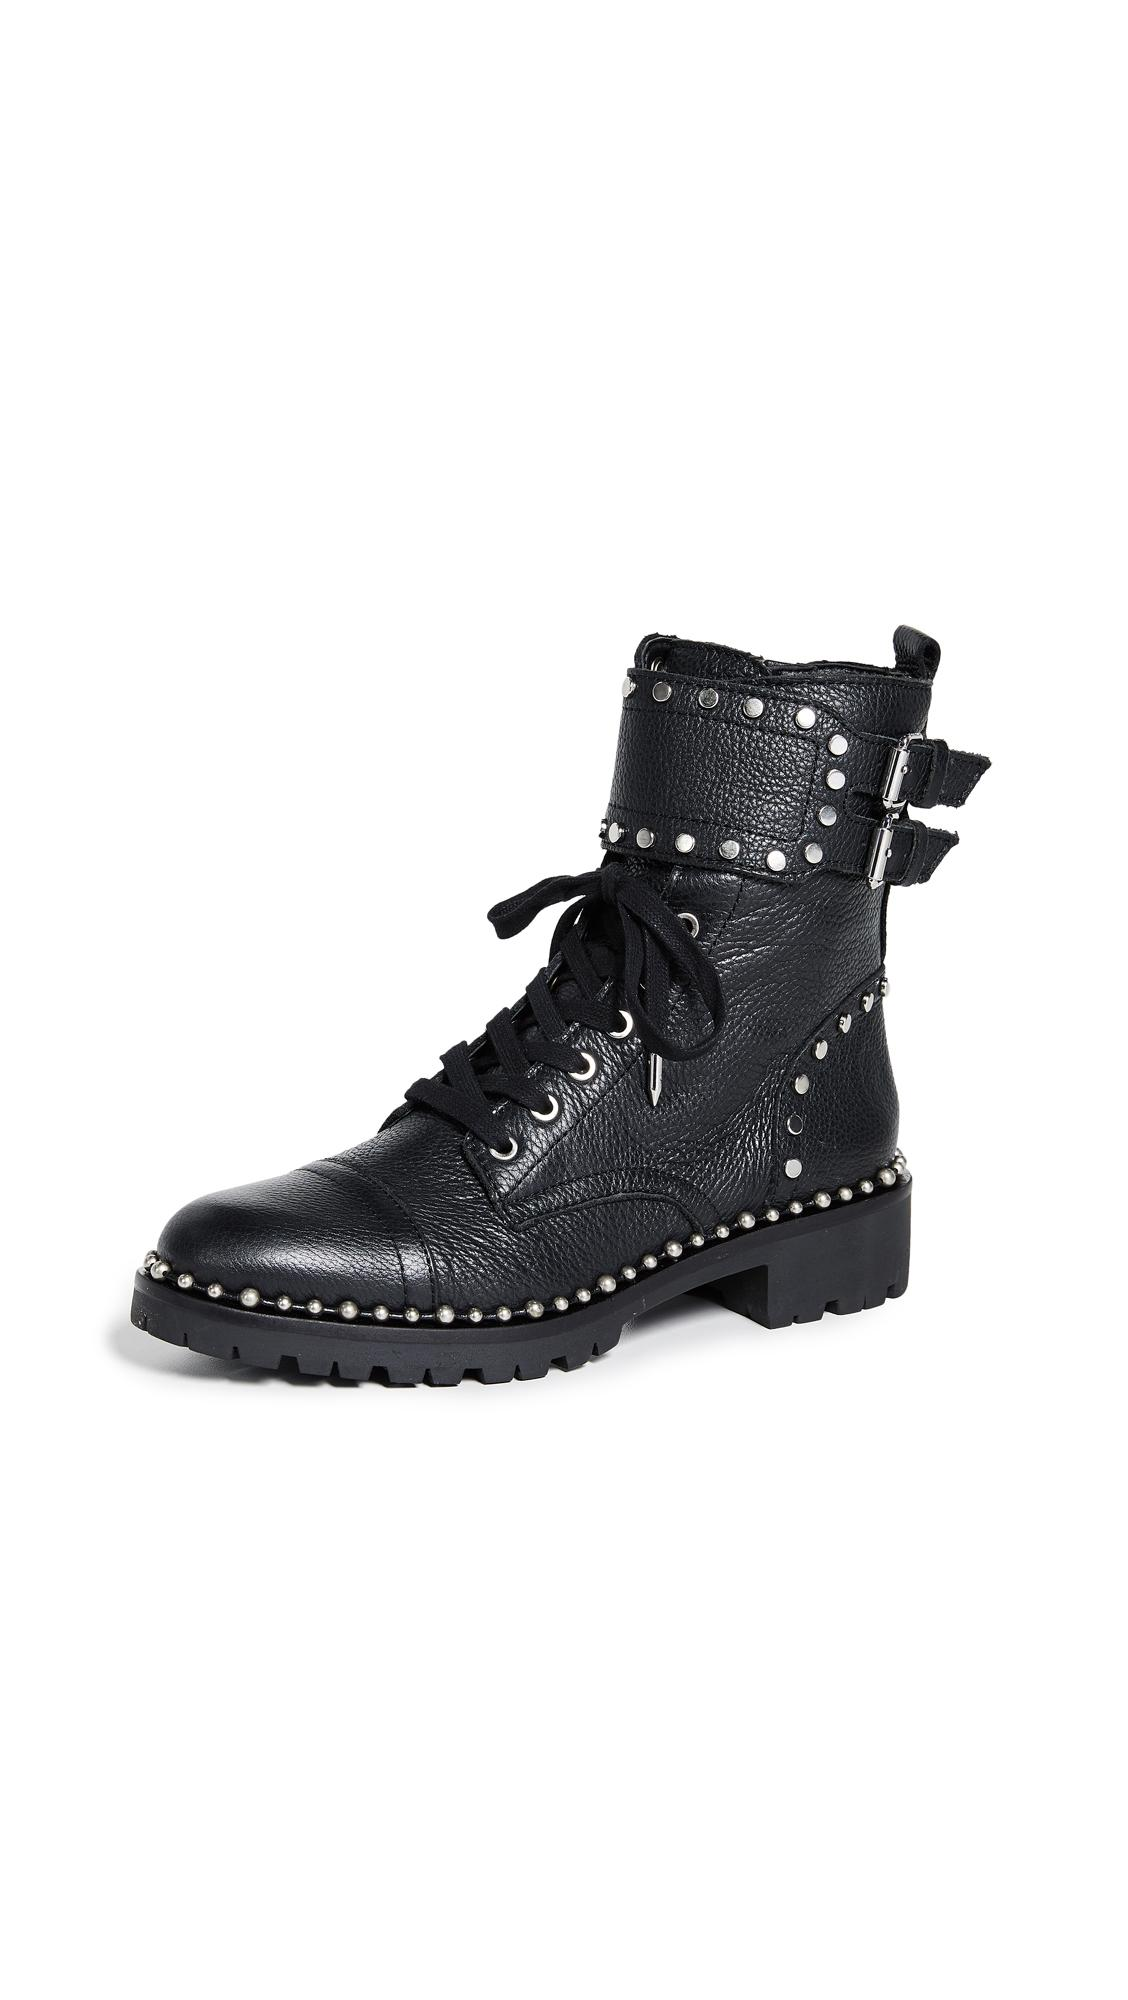 9ad1b3573d624 Sam Edelman Women s Jennifer Studded Leather Combat Booties In Black ...